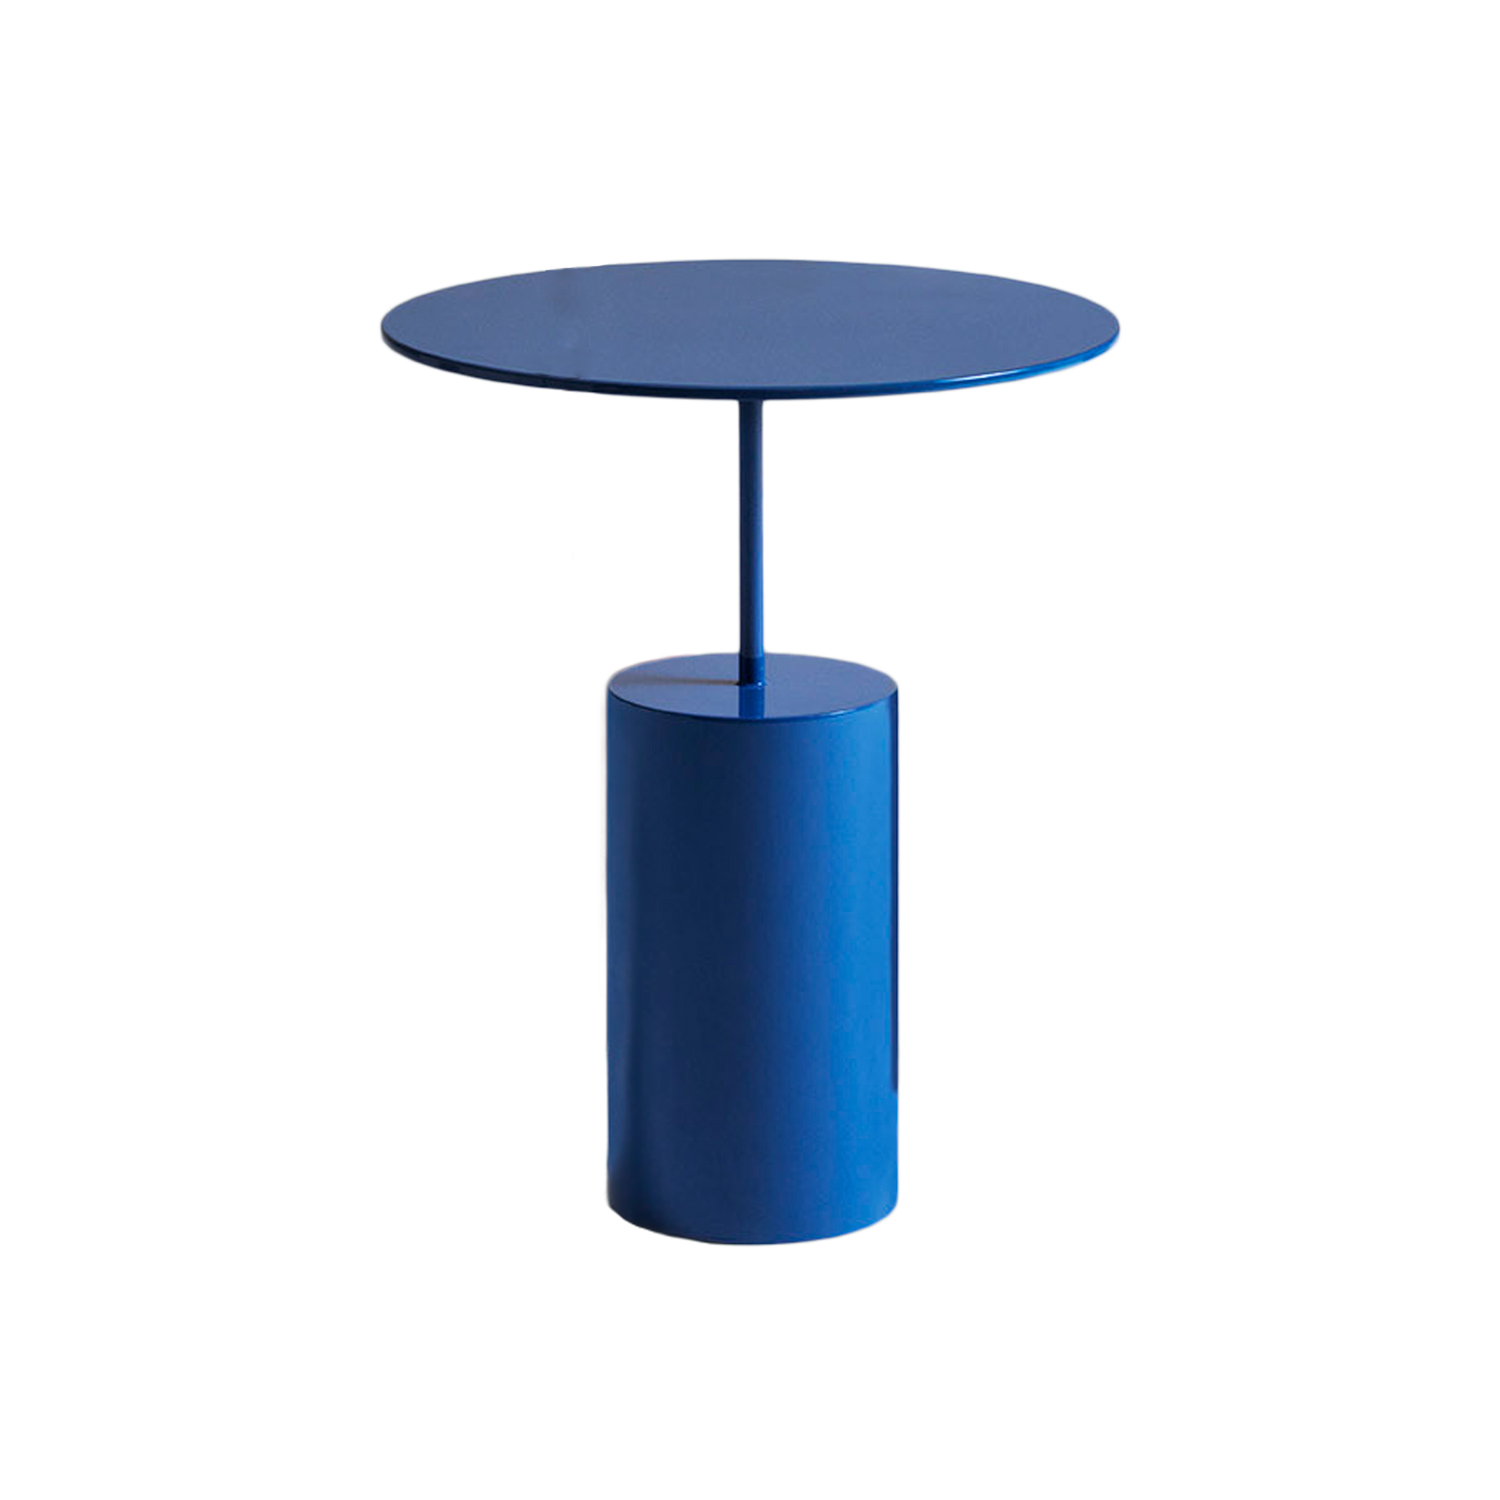 Cocktail Side Table - The Cocktail side table comes in three different sizes that also look aesthetically pleasing on their own. They are ideal to use